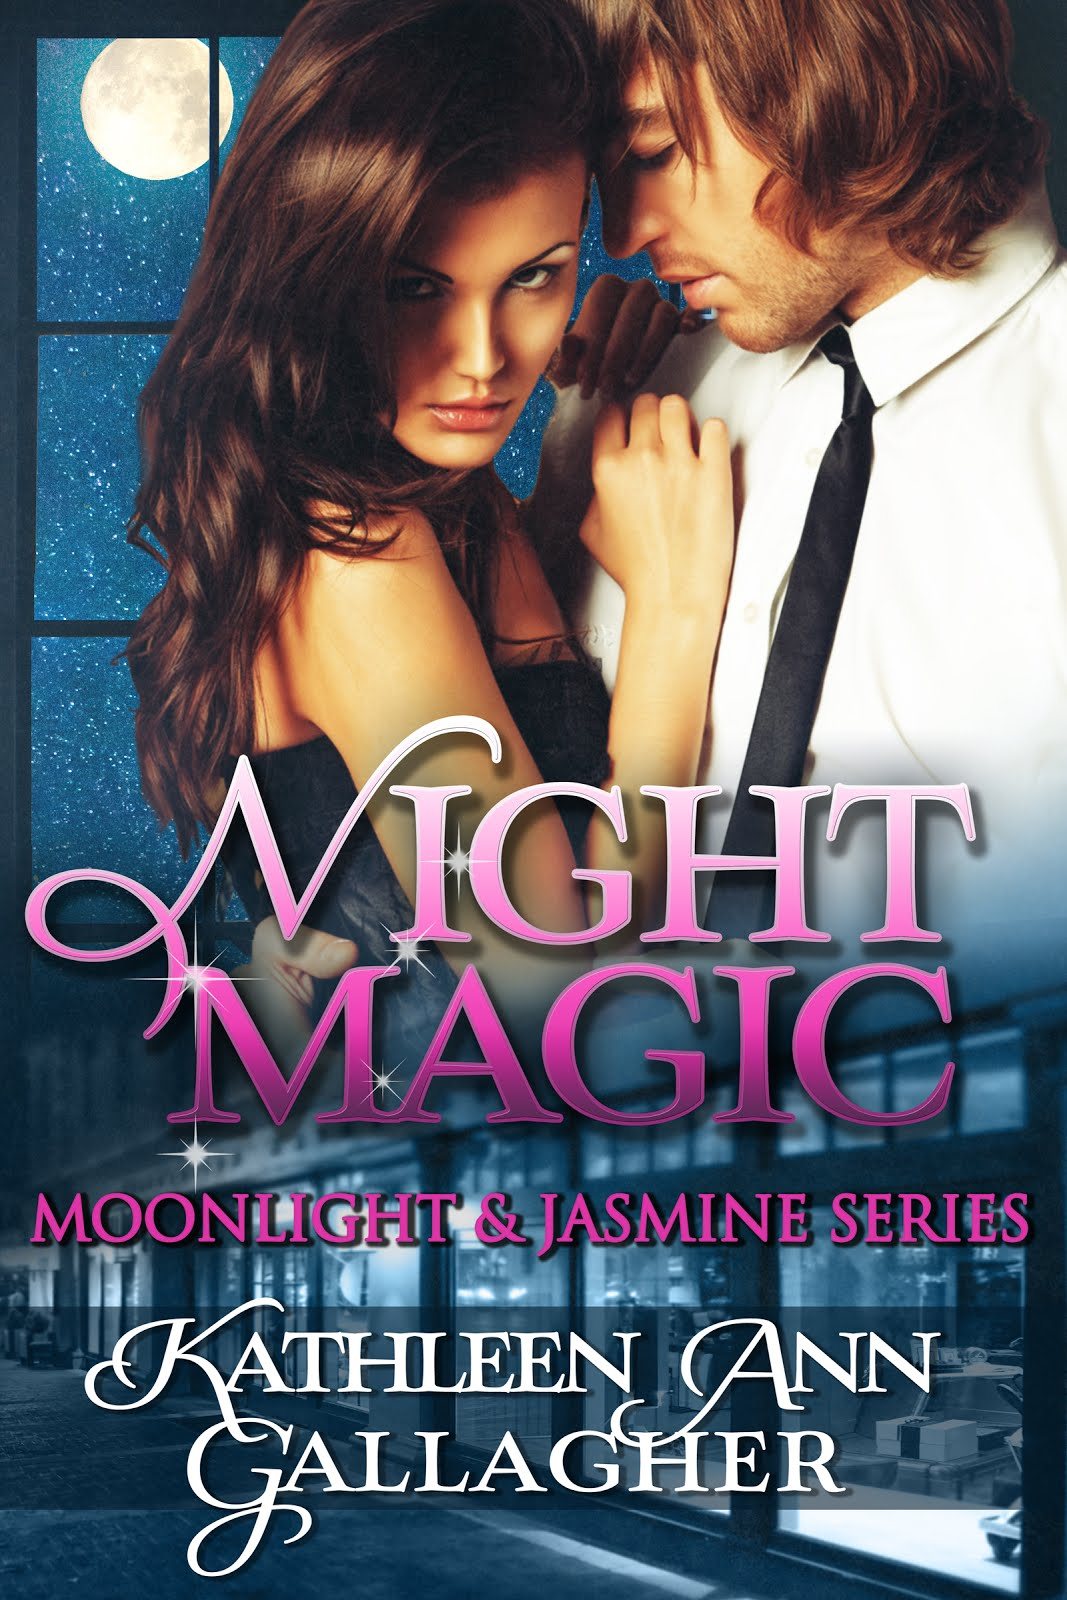 Night Magic, Book 1 Moonlight & Jasmine Series